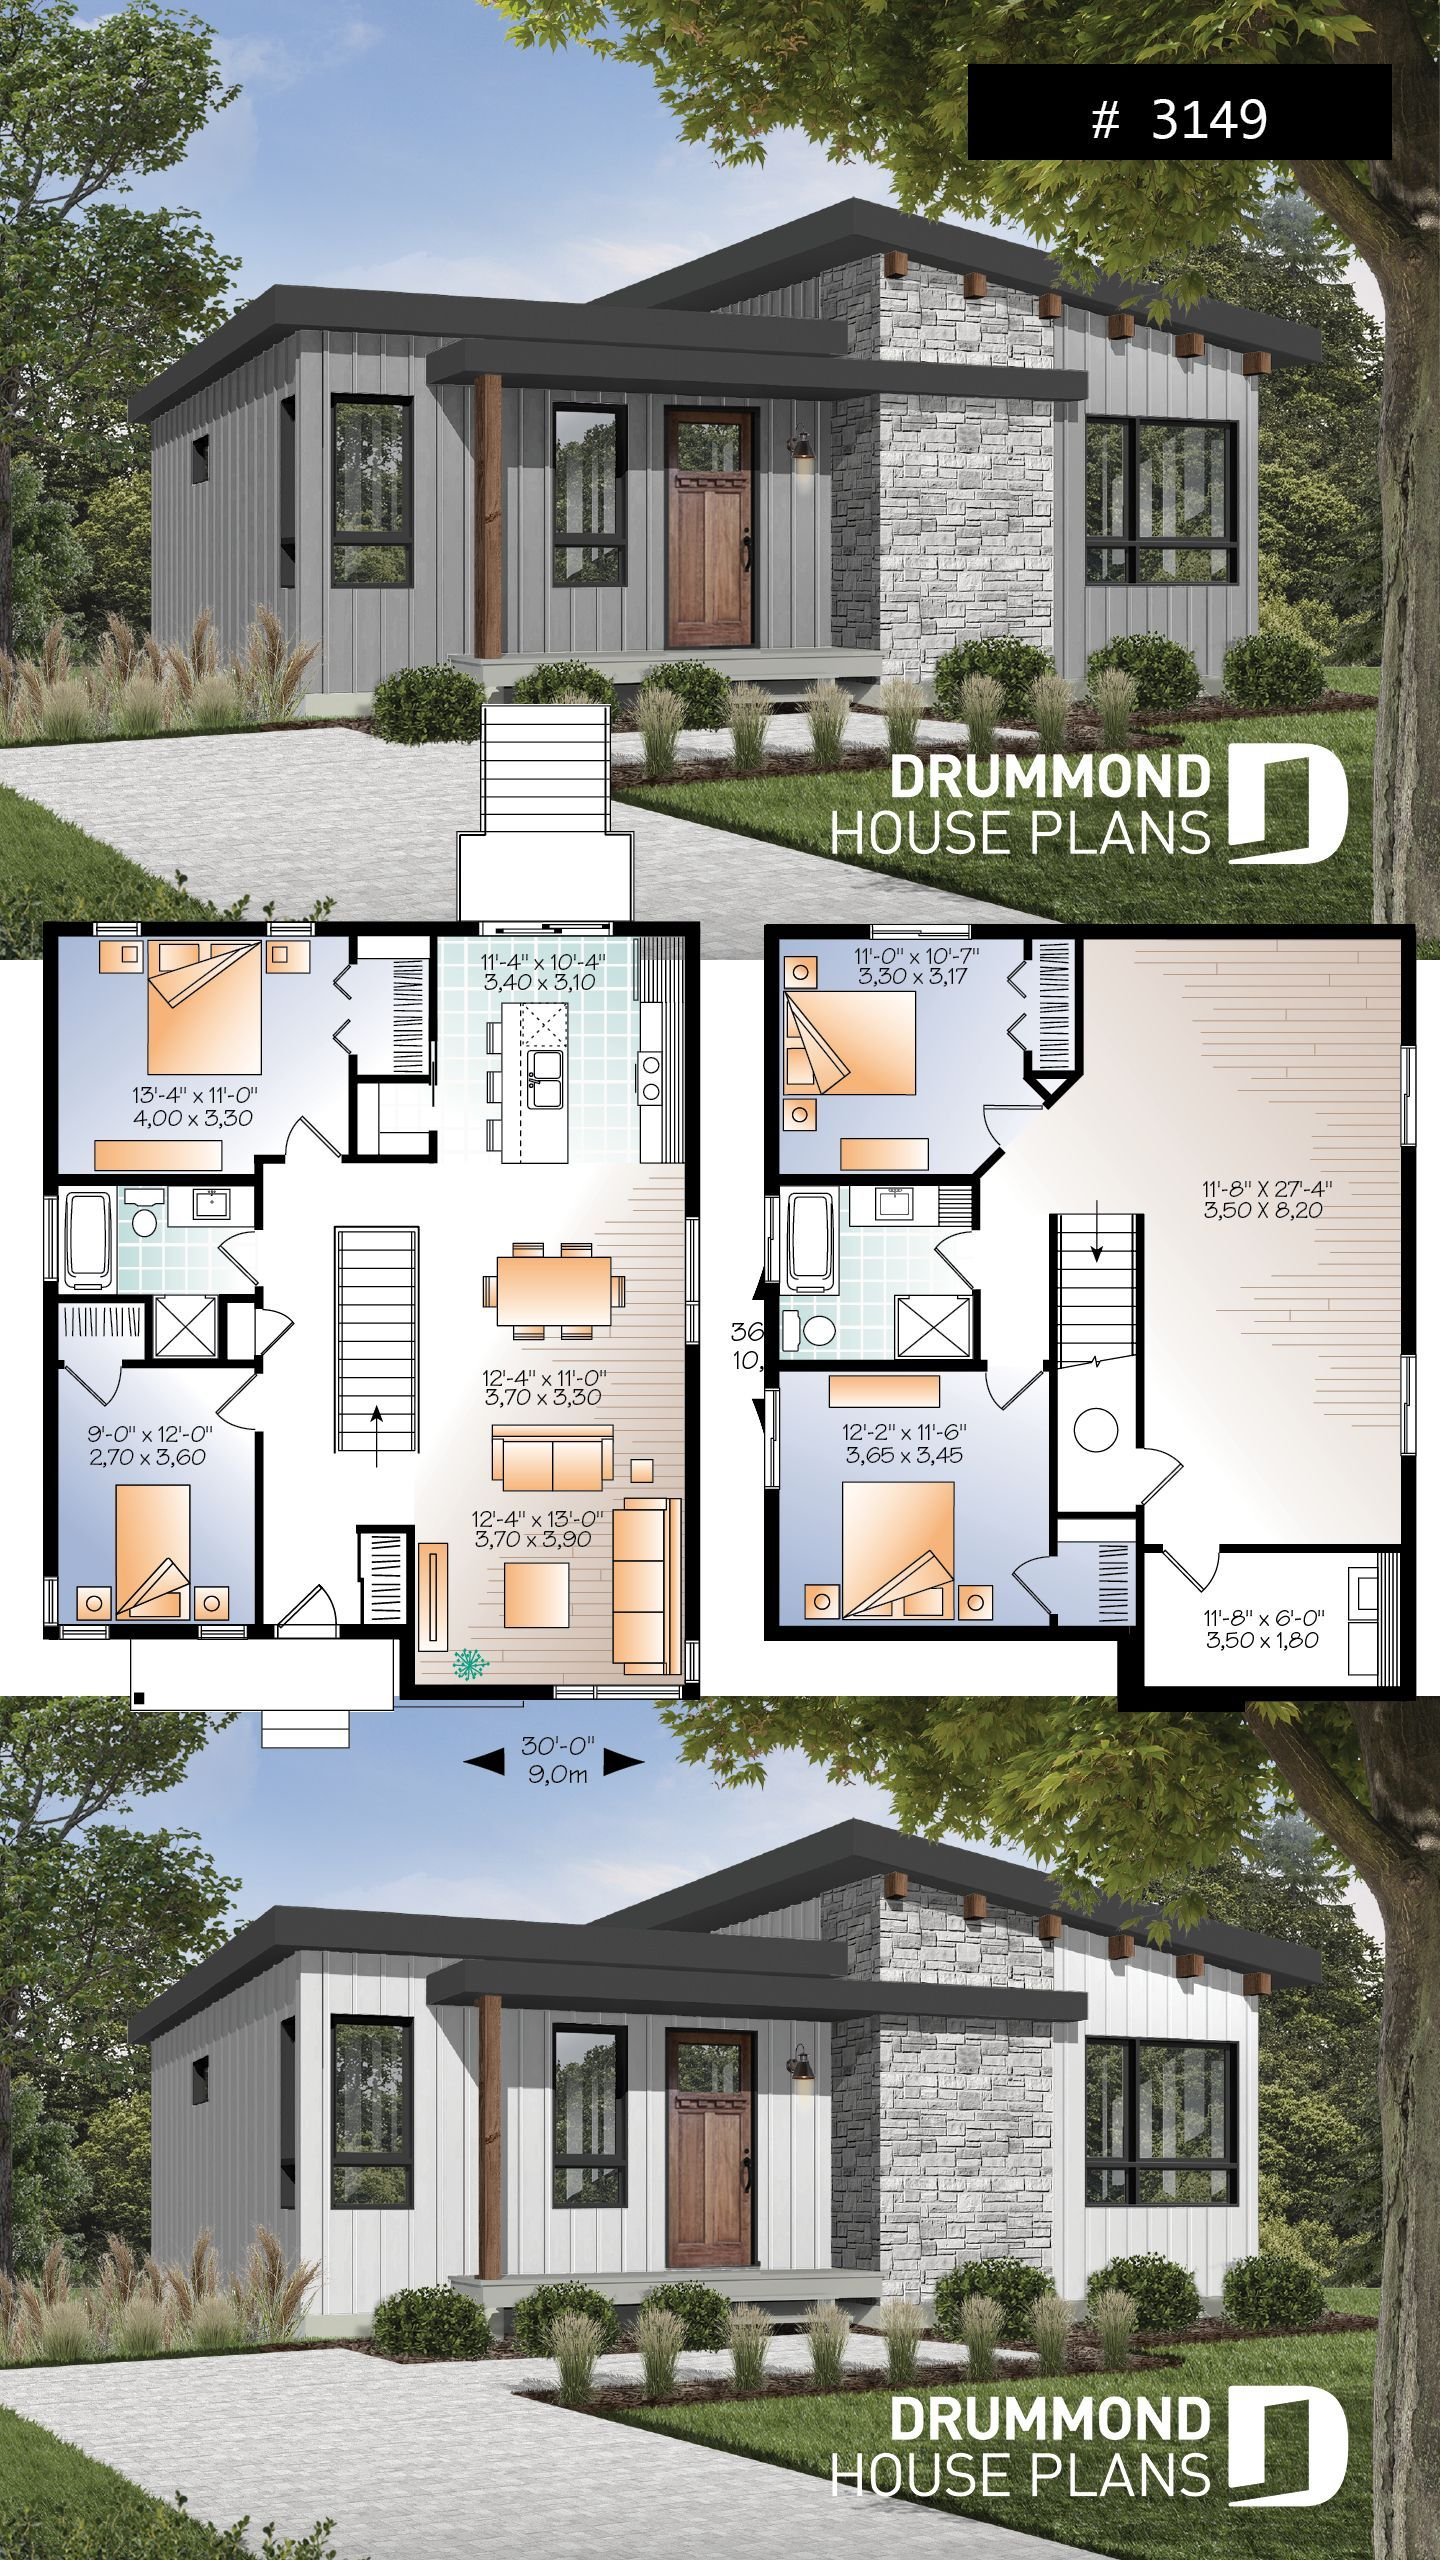 Mid Century Home Plan Small 4 Bedrooms Affordable Modern House Plan Finished Basement Total 4 Beds 2 Family Rooms Walk In 2020 Haus Plane Haus Haus Grundriss